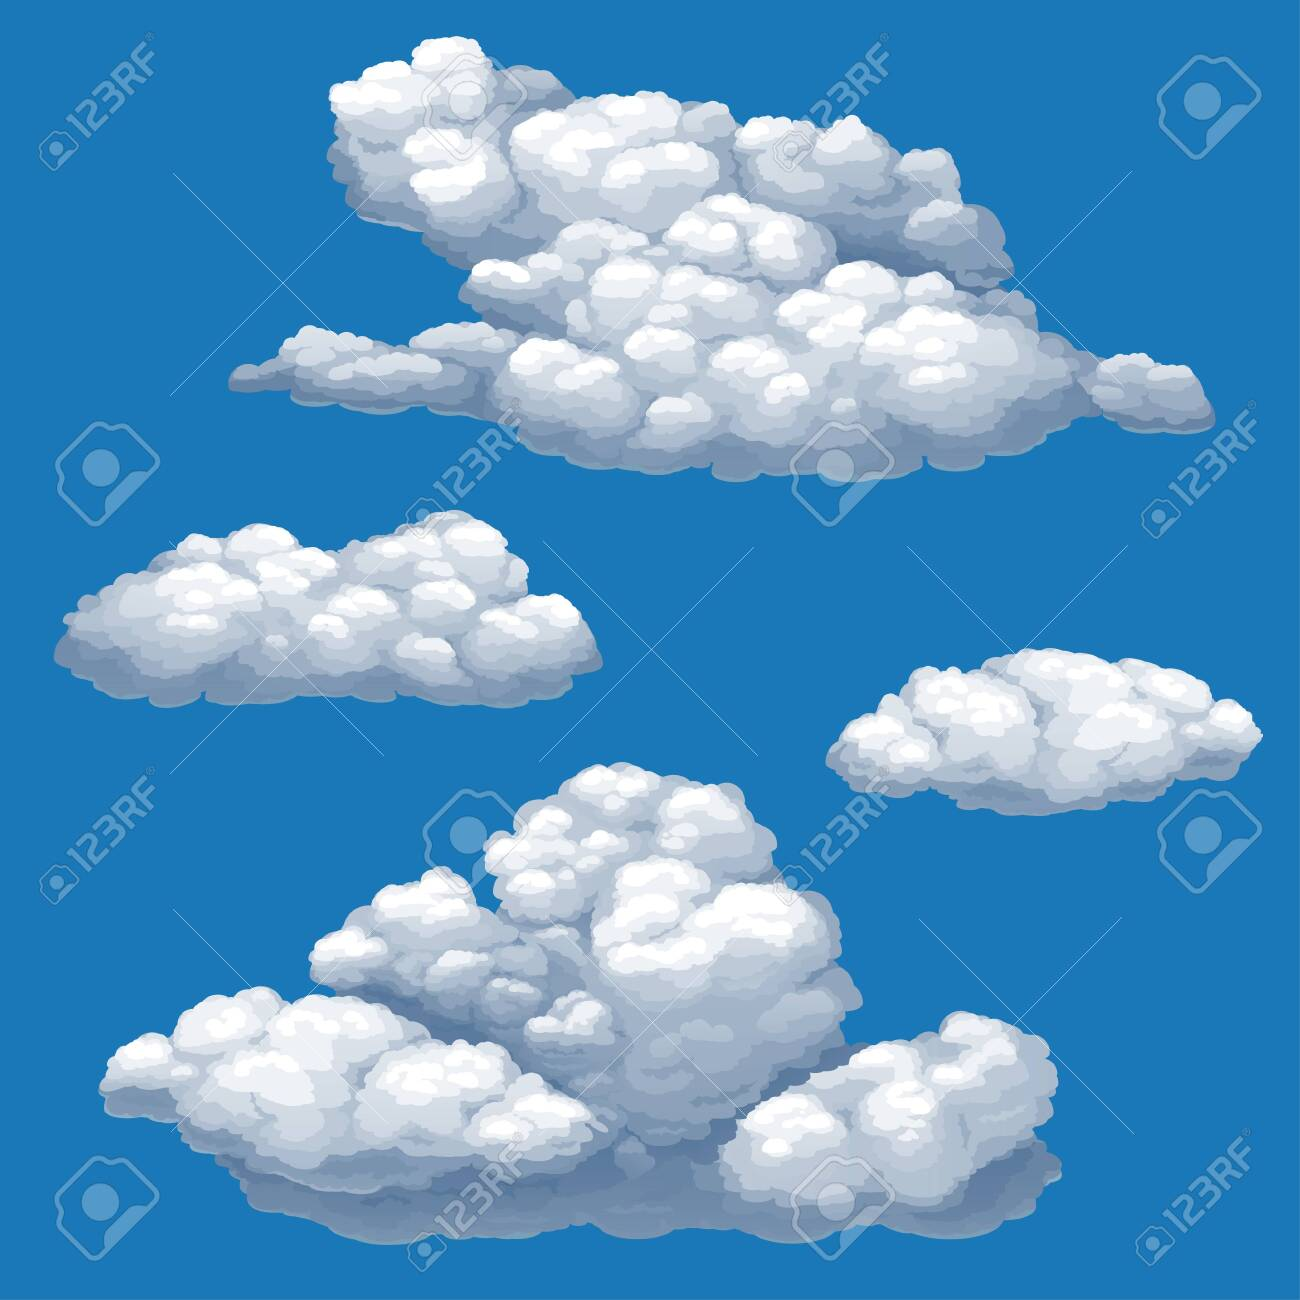 Set of vector isolated images of cumulus clouds on a blue sky background. - 142150143